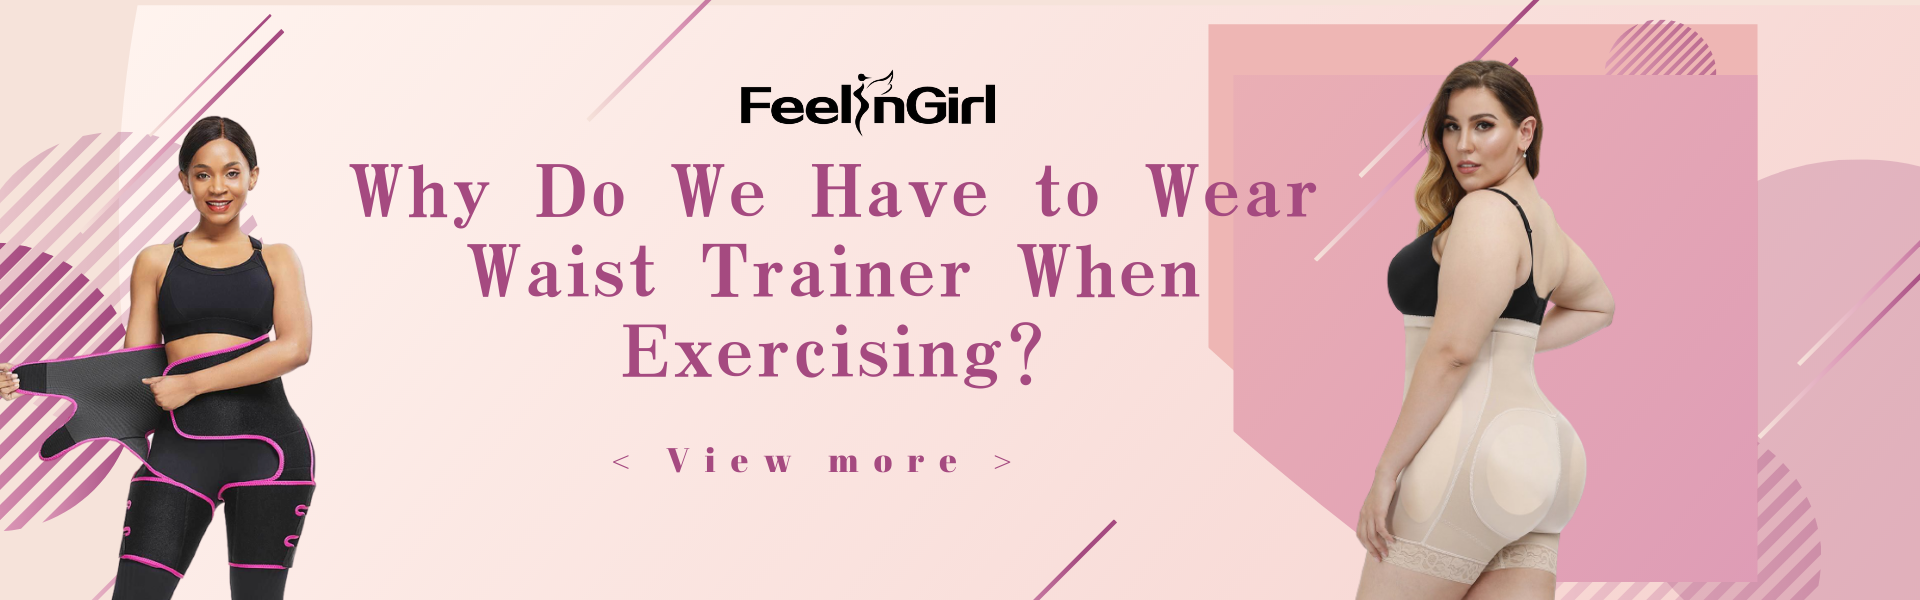 Why Do We Have to Wear  Waist Trainer When Exercising?